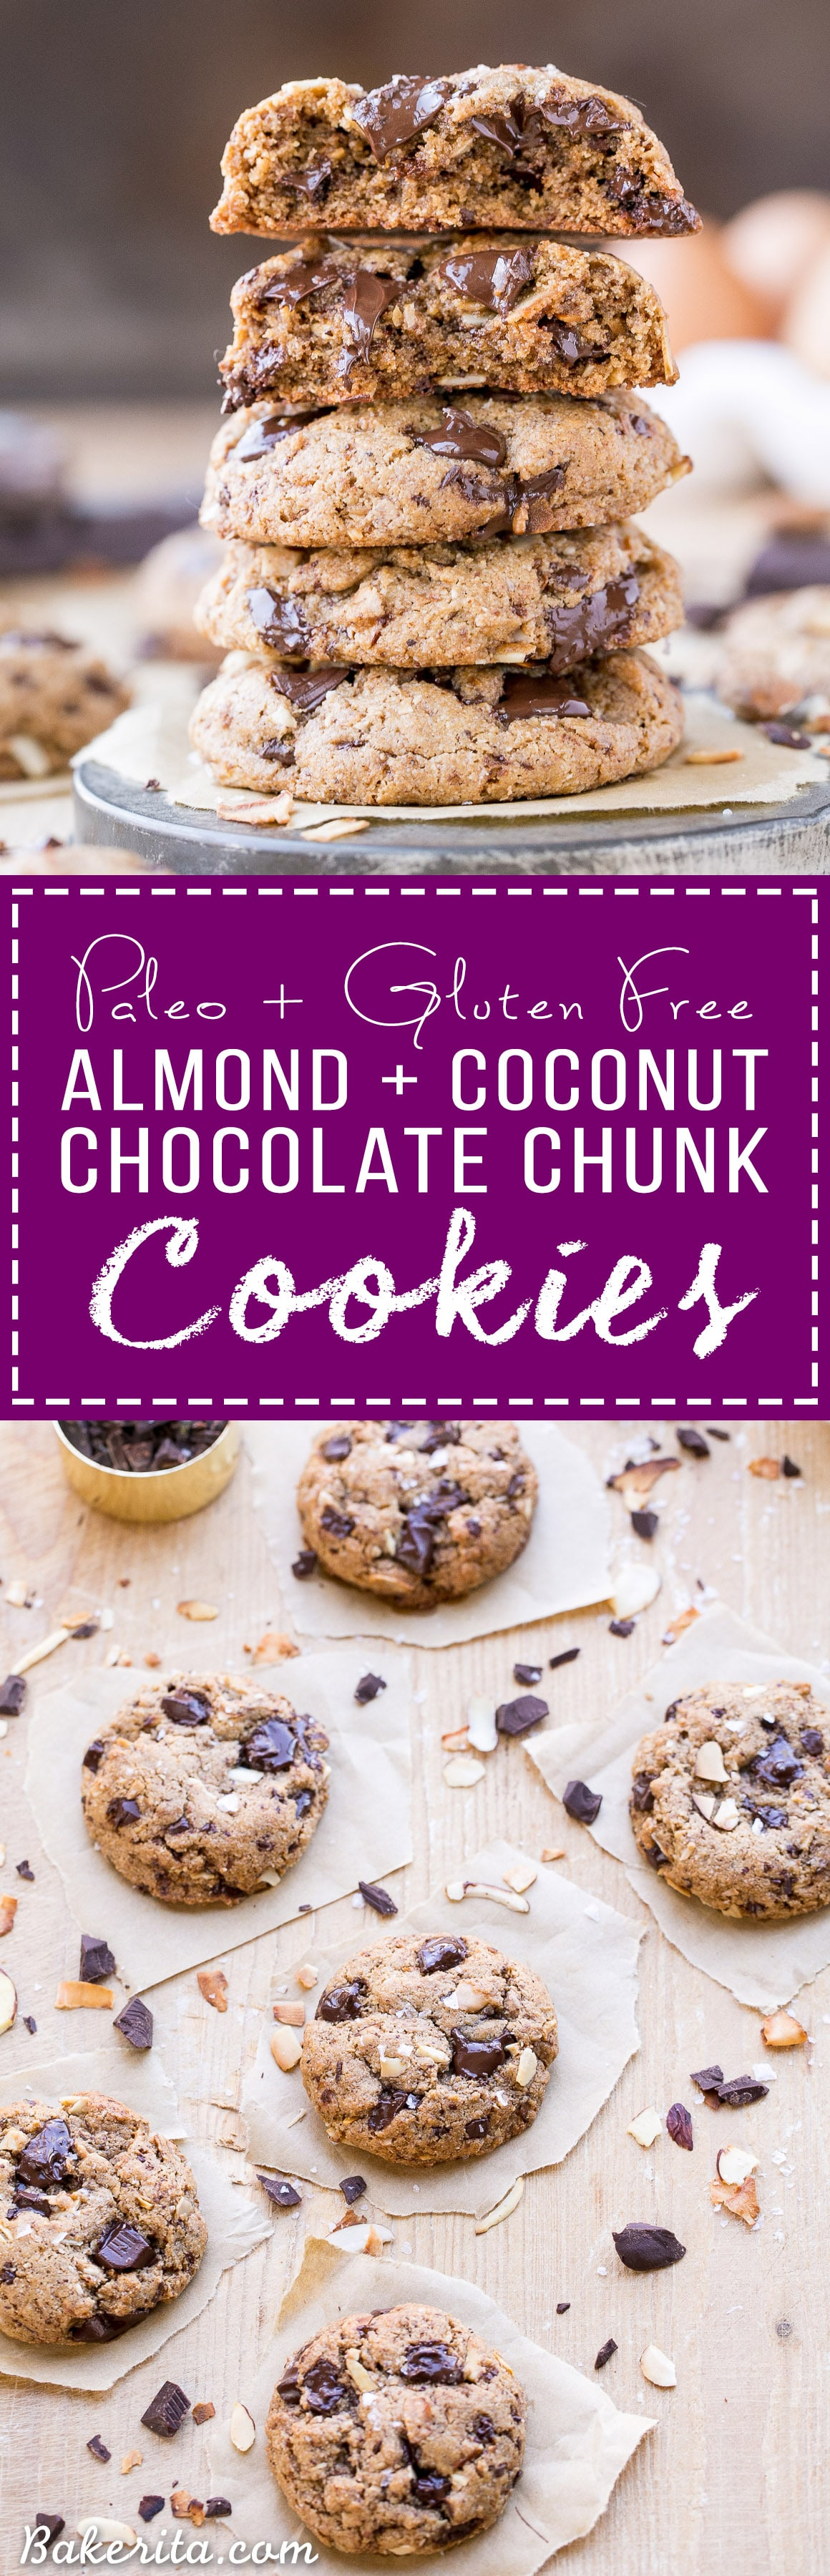 These Paleo Almond Coconut Chocolate Chunk Cookies are made with almond butter and big chocolate chunks for super gooey, decadent cookies! These gluten free and refined sugar free cookies will definitely satisfy your cookie craving.